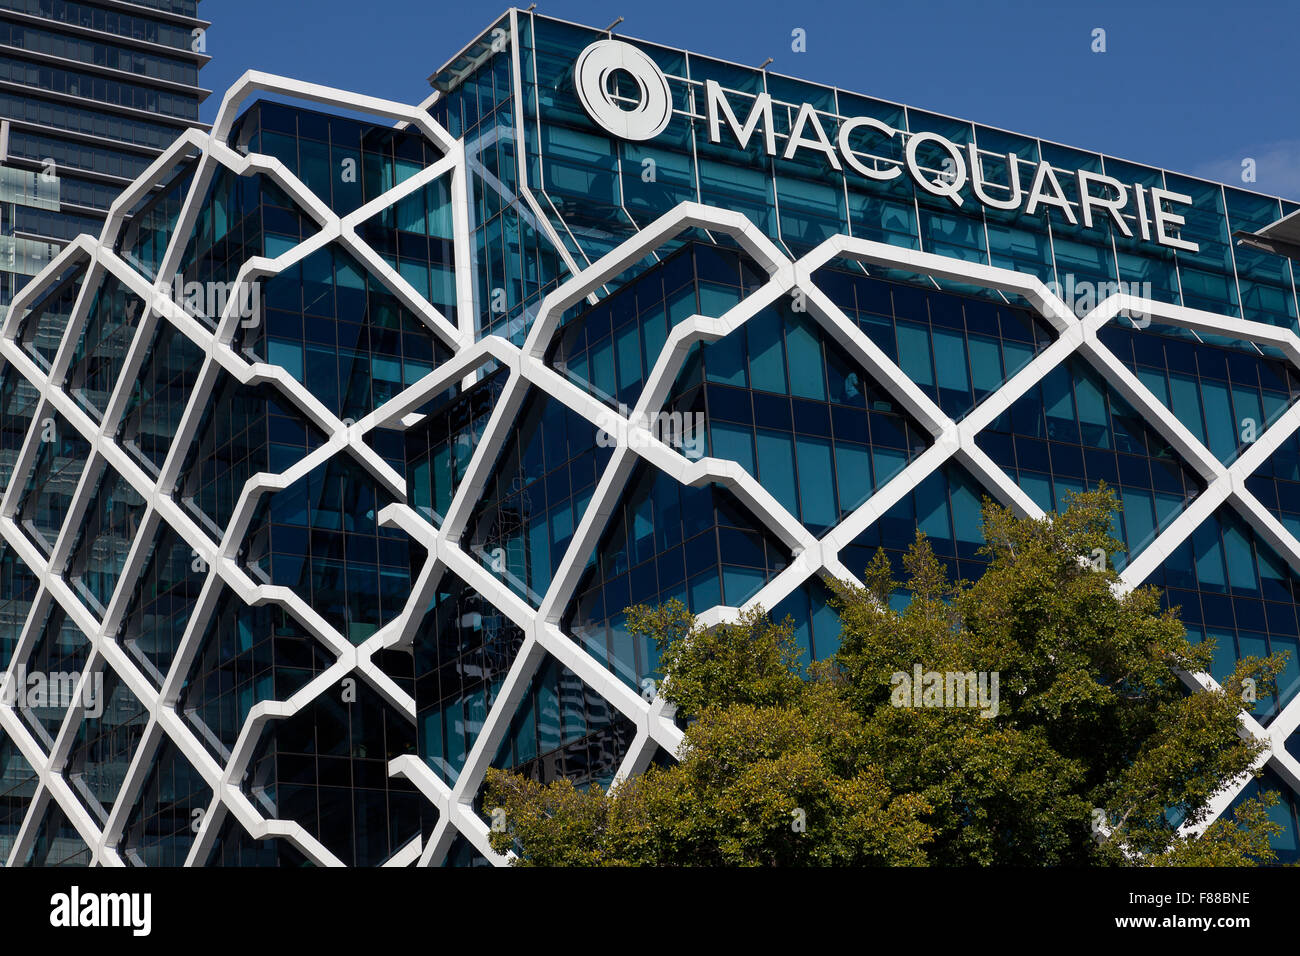 macquarie bank The macquarie film corporation was a short-lived australian film finance company that operated from 2002 to 2006 it was an offshoot of macquarie bank limited.